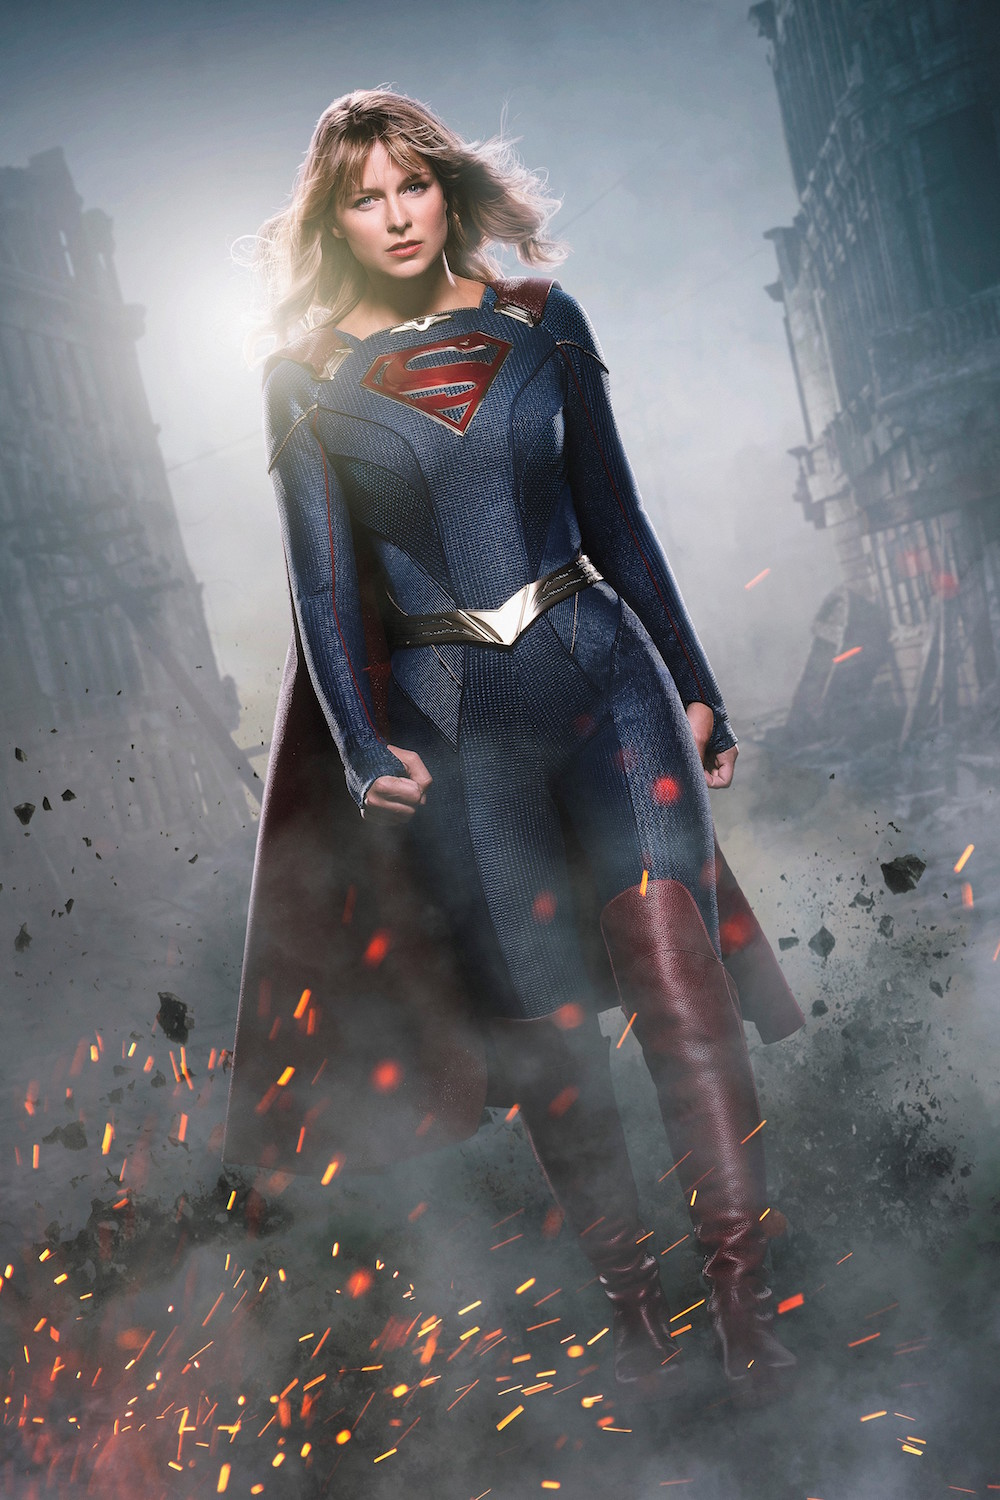 Supergirl - Season 5 Episode 19 - Immortal Kombat